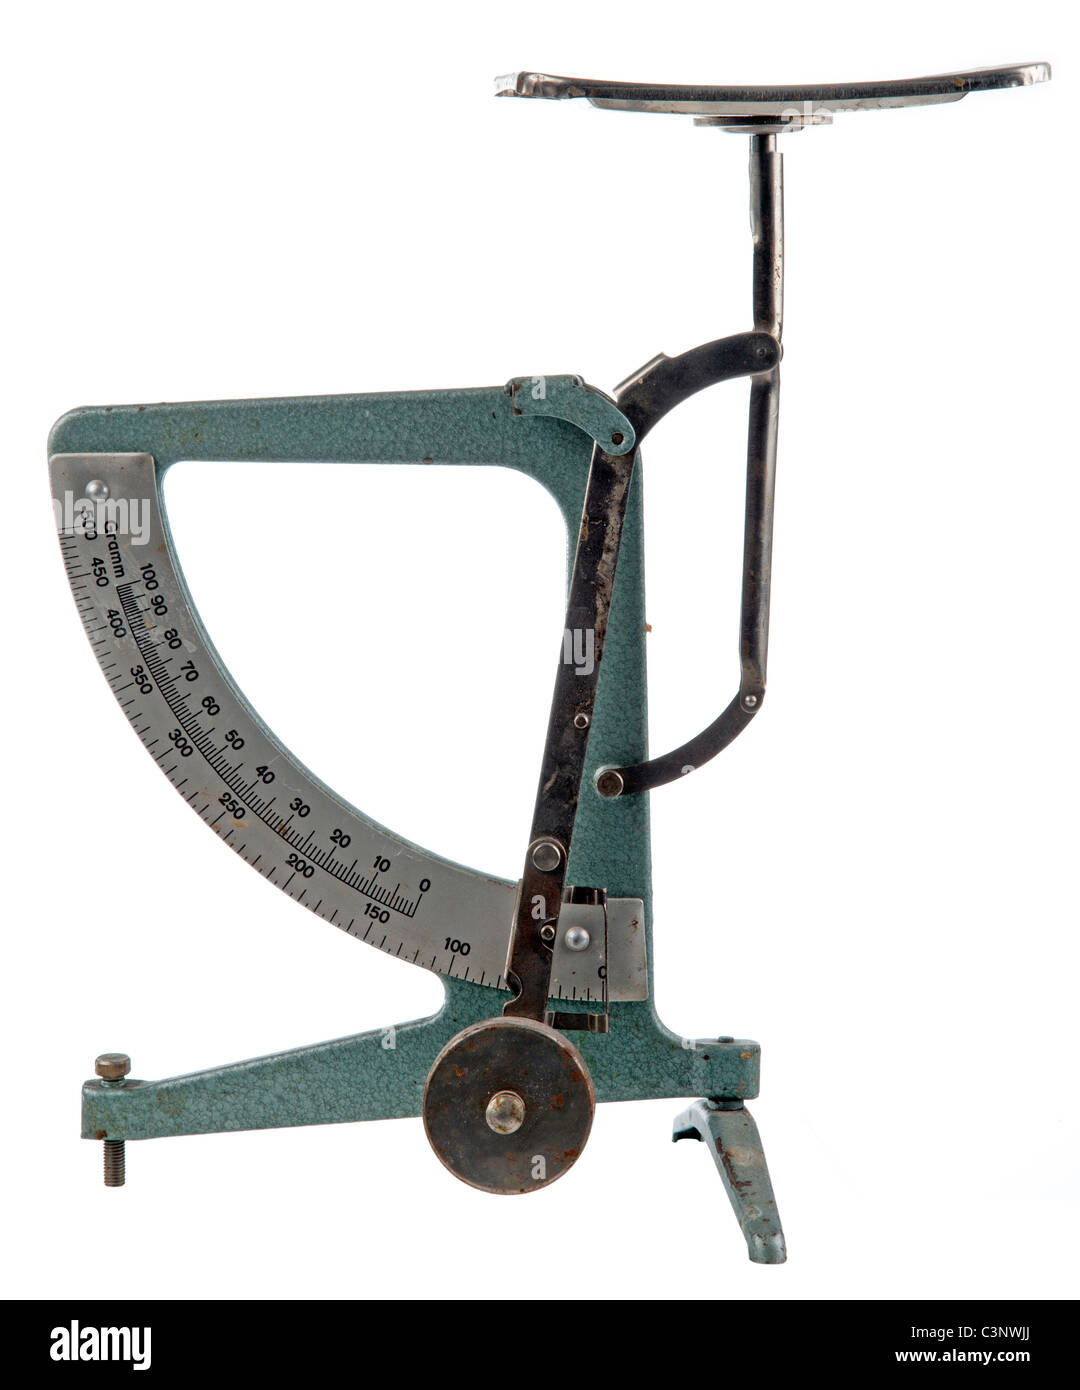 Old Weight Scale - Stock Image